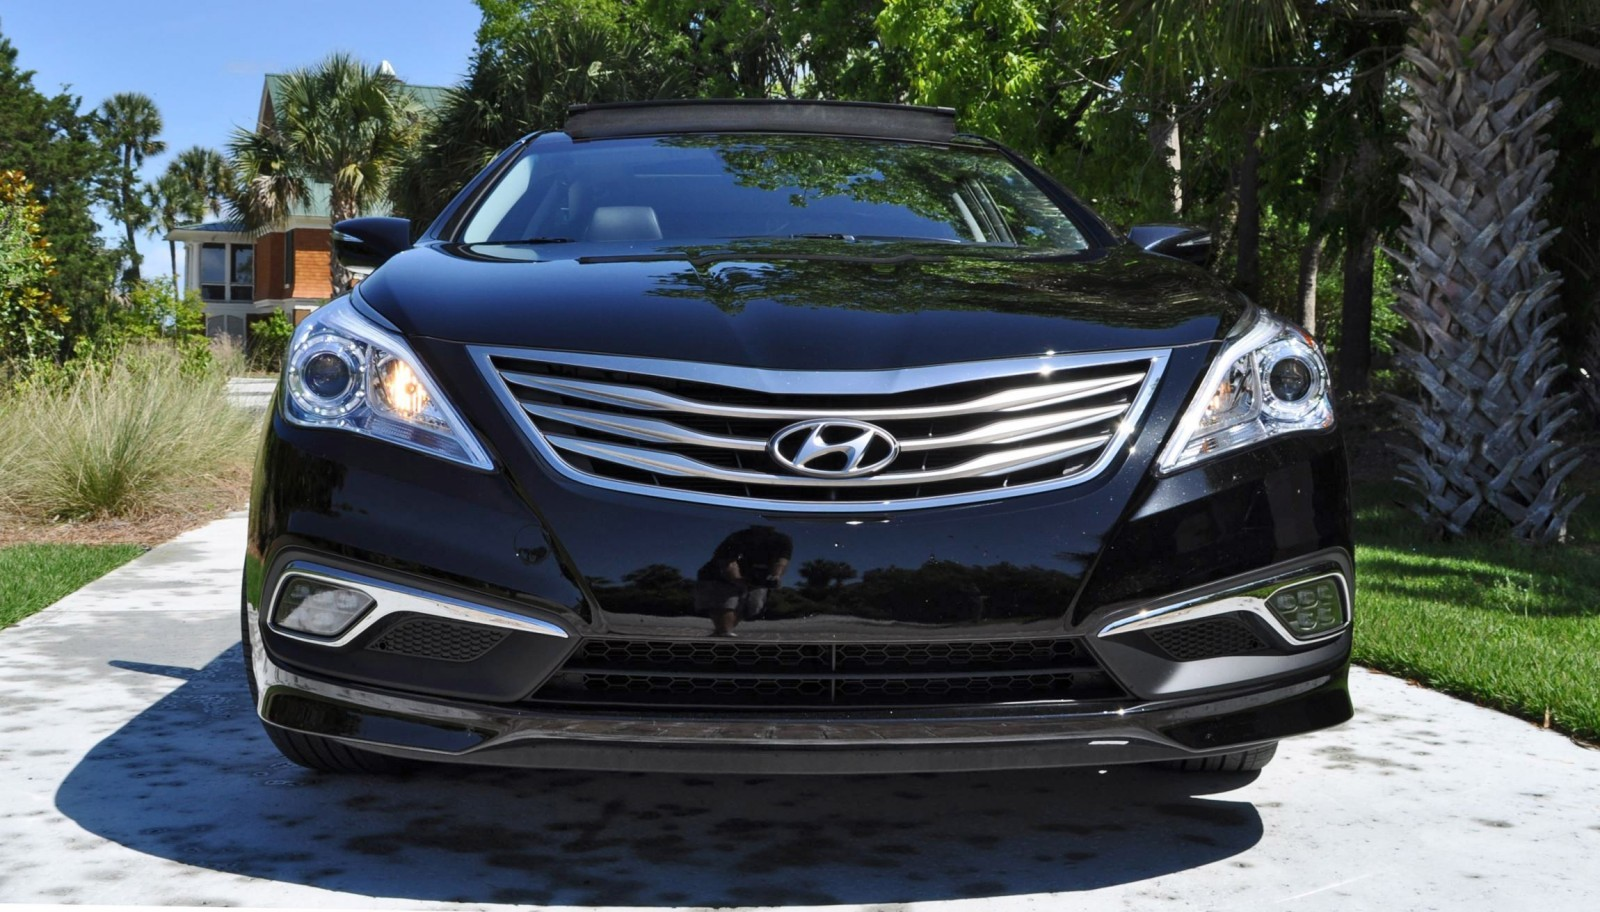 Road Test Review - 2015 Hyundai AZERA Limited 73